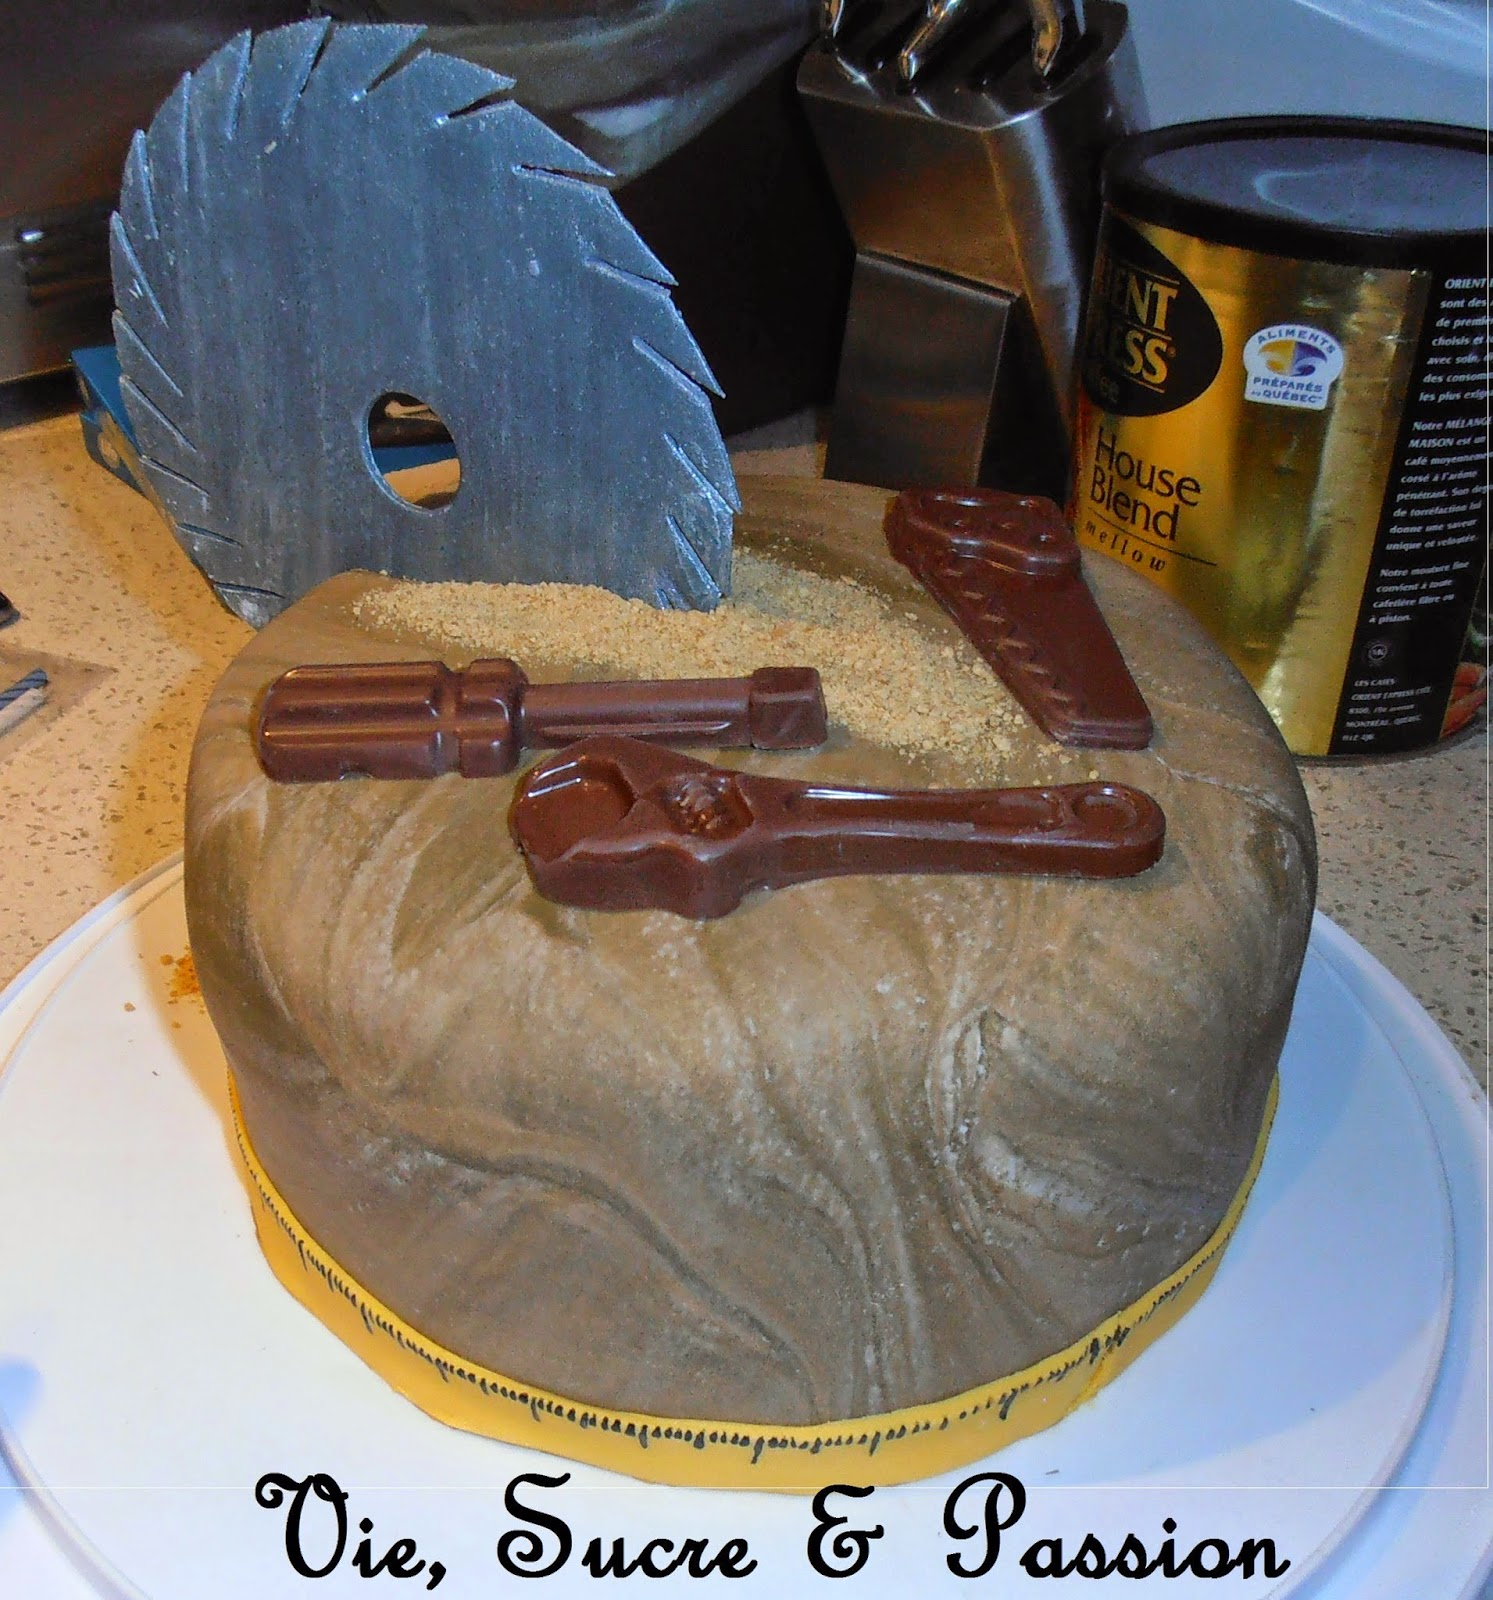 Handyman Cake, Edible Tools